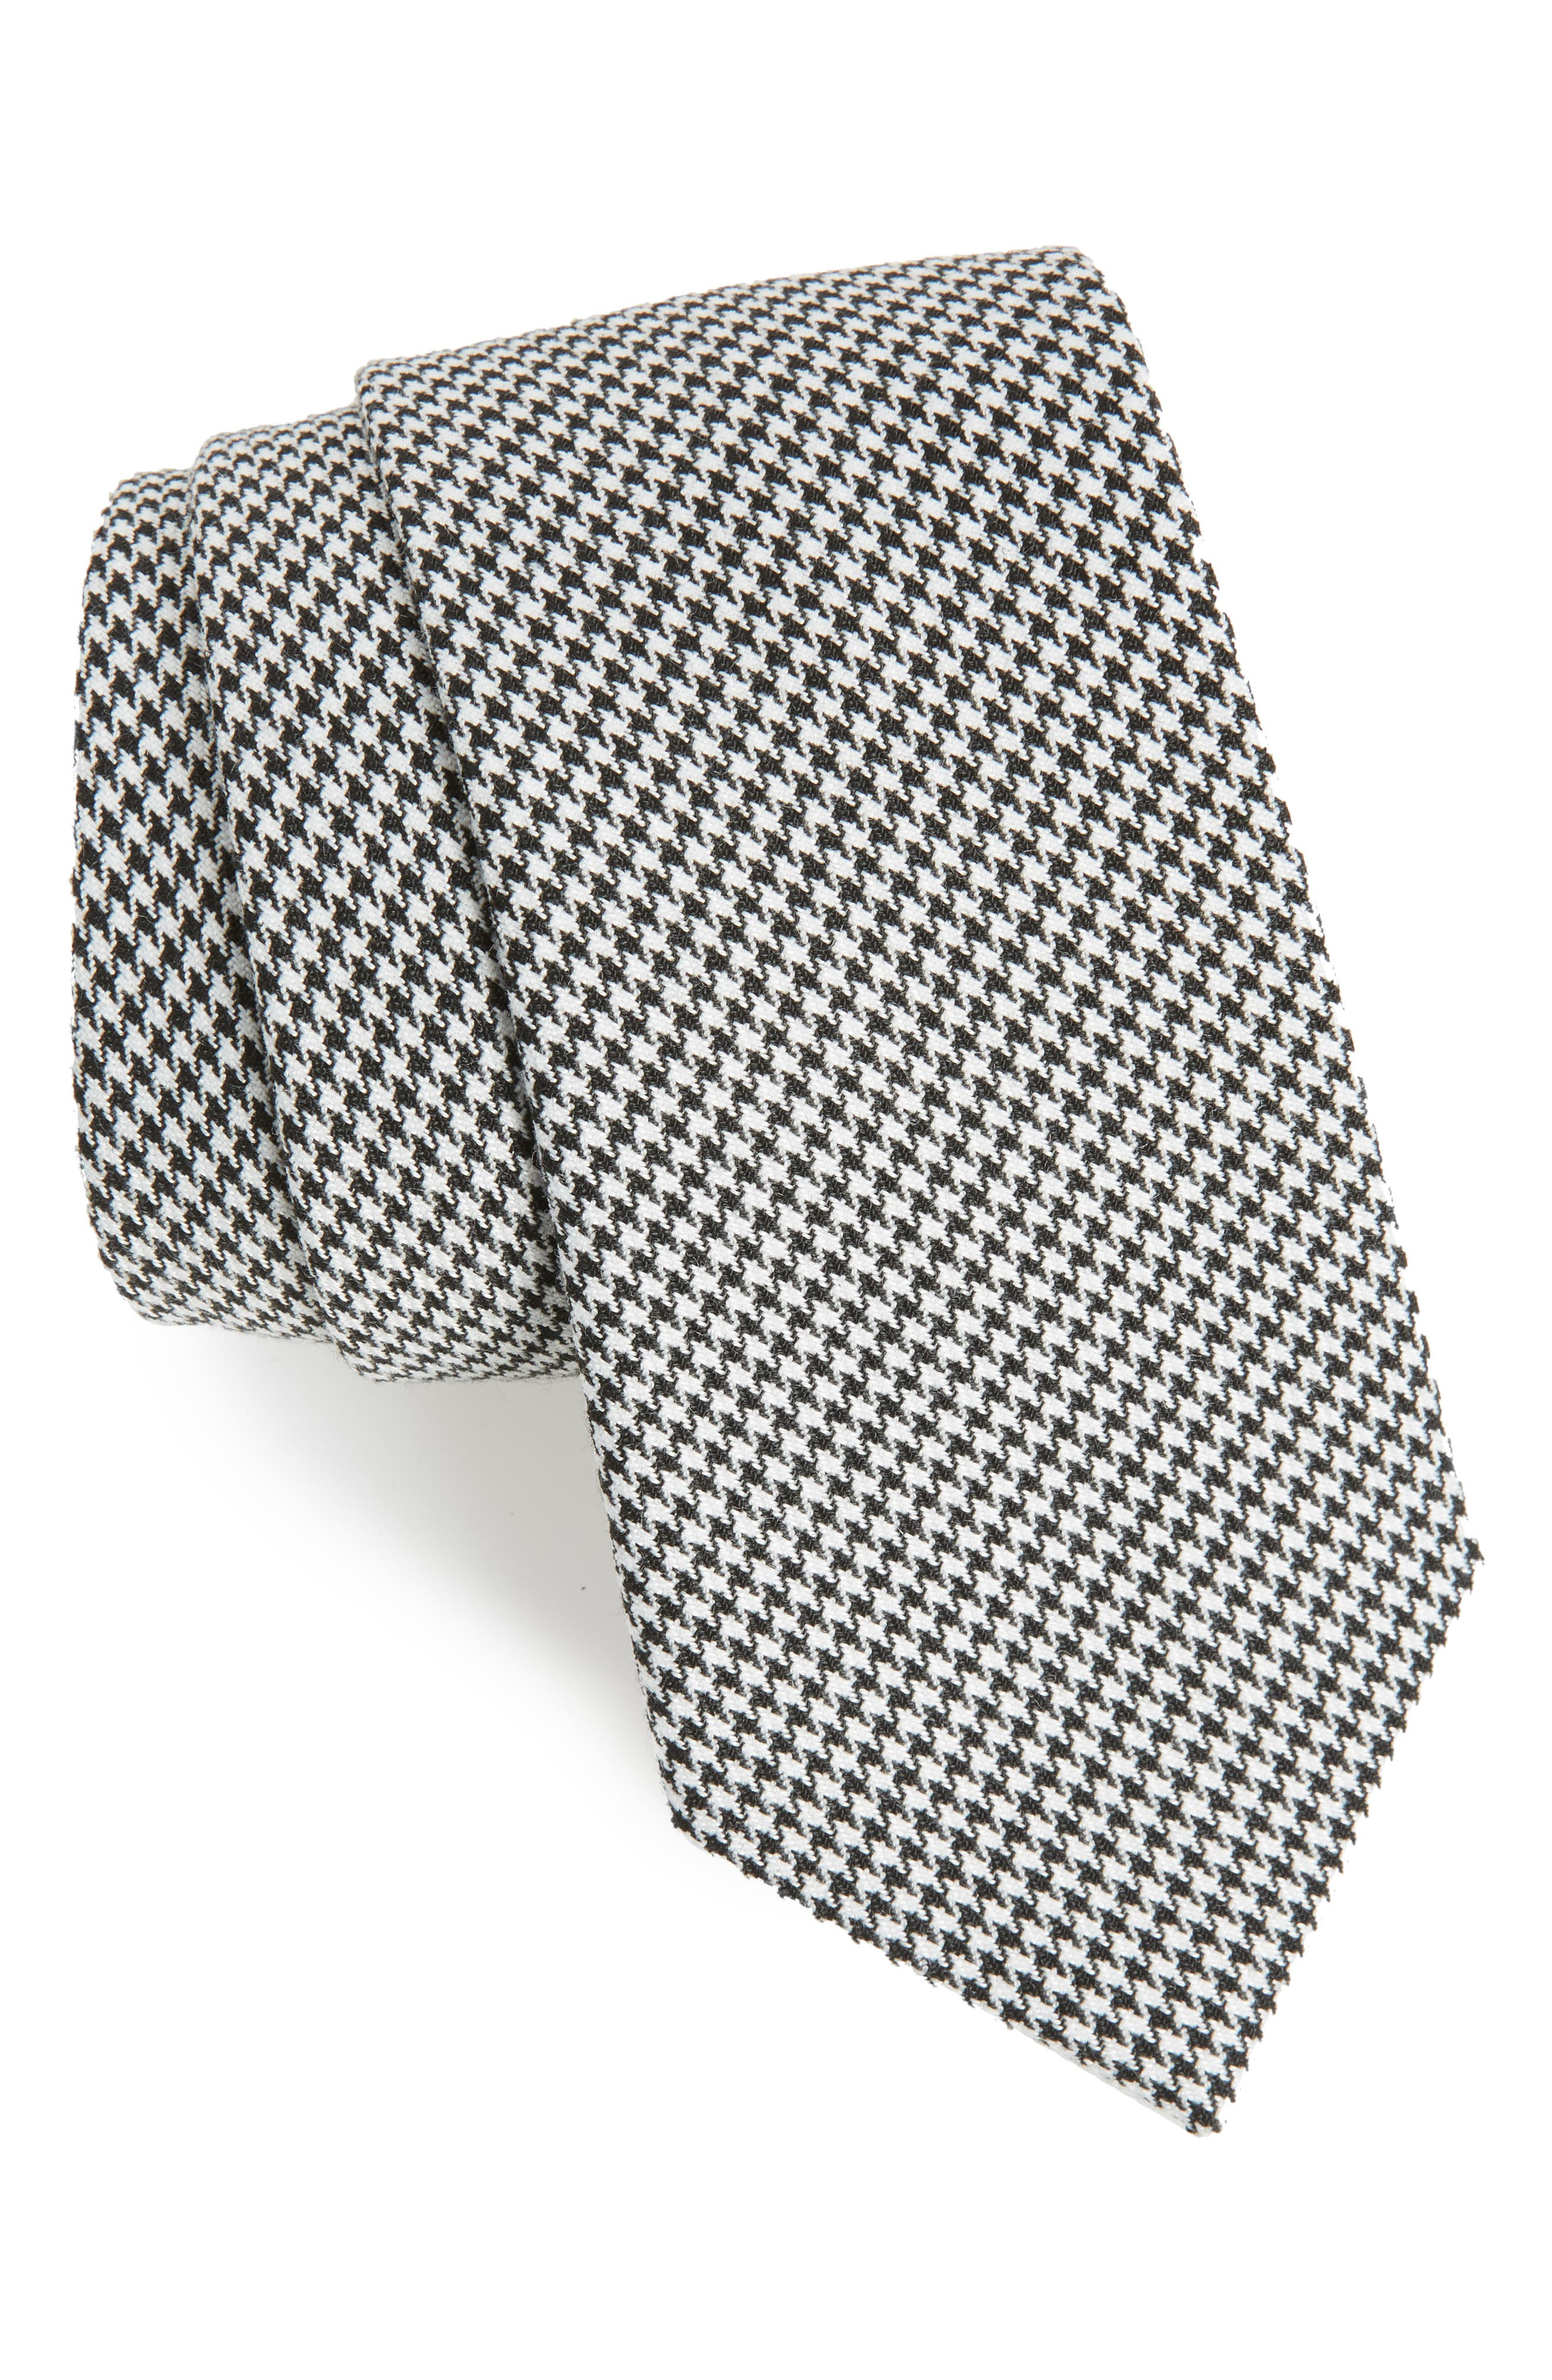 Houndstooth Woven Tie,                         Main,                         color, 001